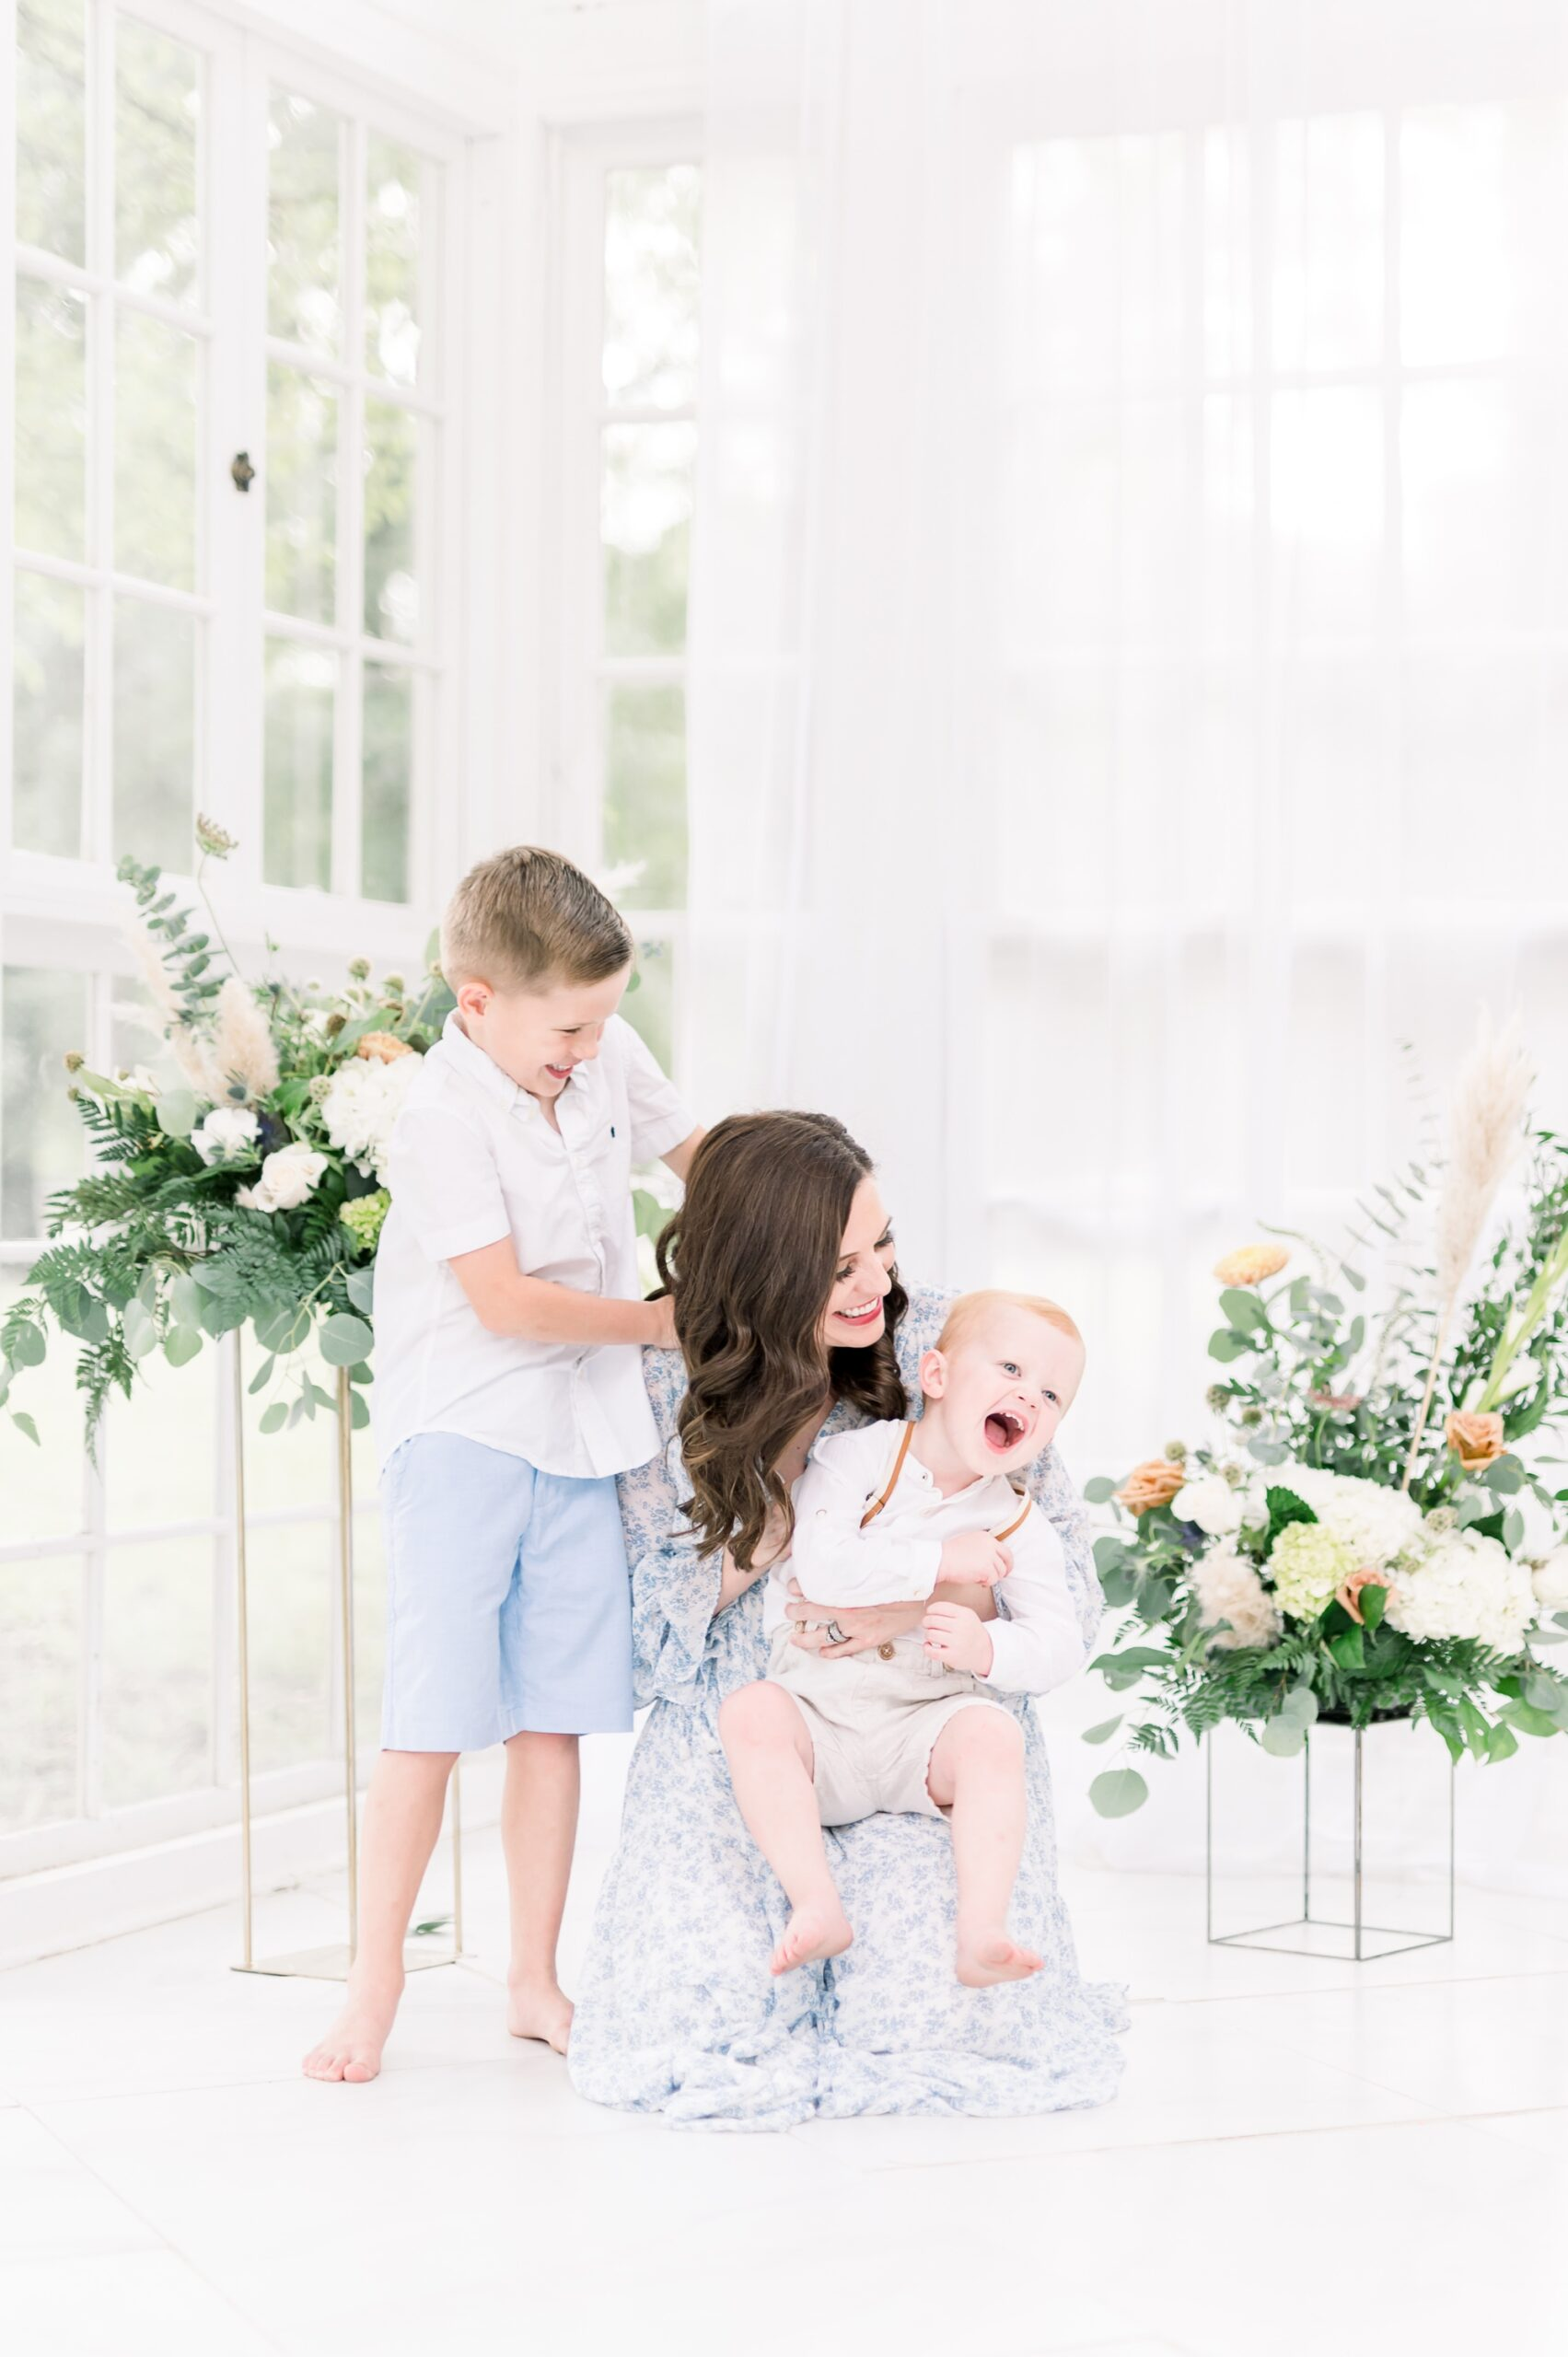 Mom with two boys laughing together during motherhood session. Photo by Dallas family photographer, Aimee Hamilton Photography.